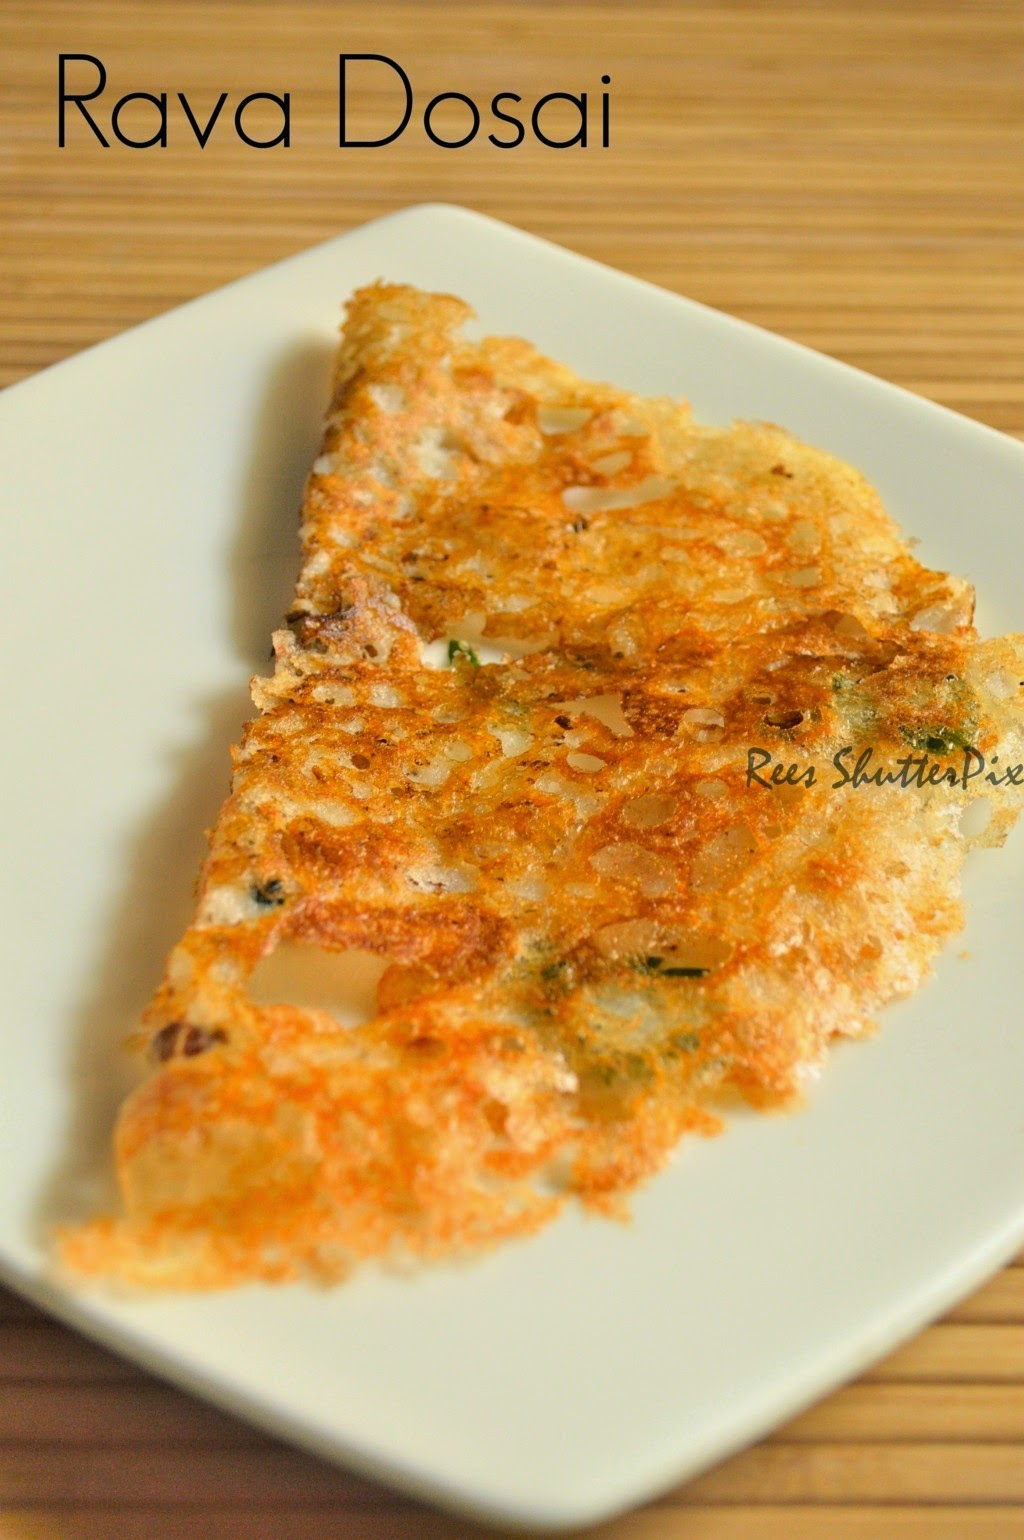 ava dosa, onion rava dosa recipe, step by step picture recipe, rava dosai